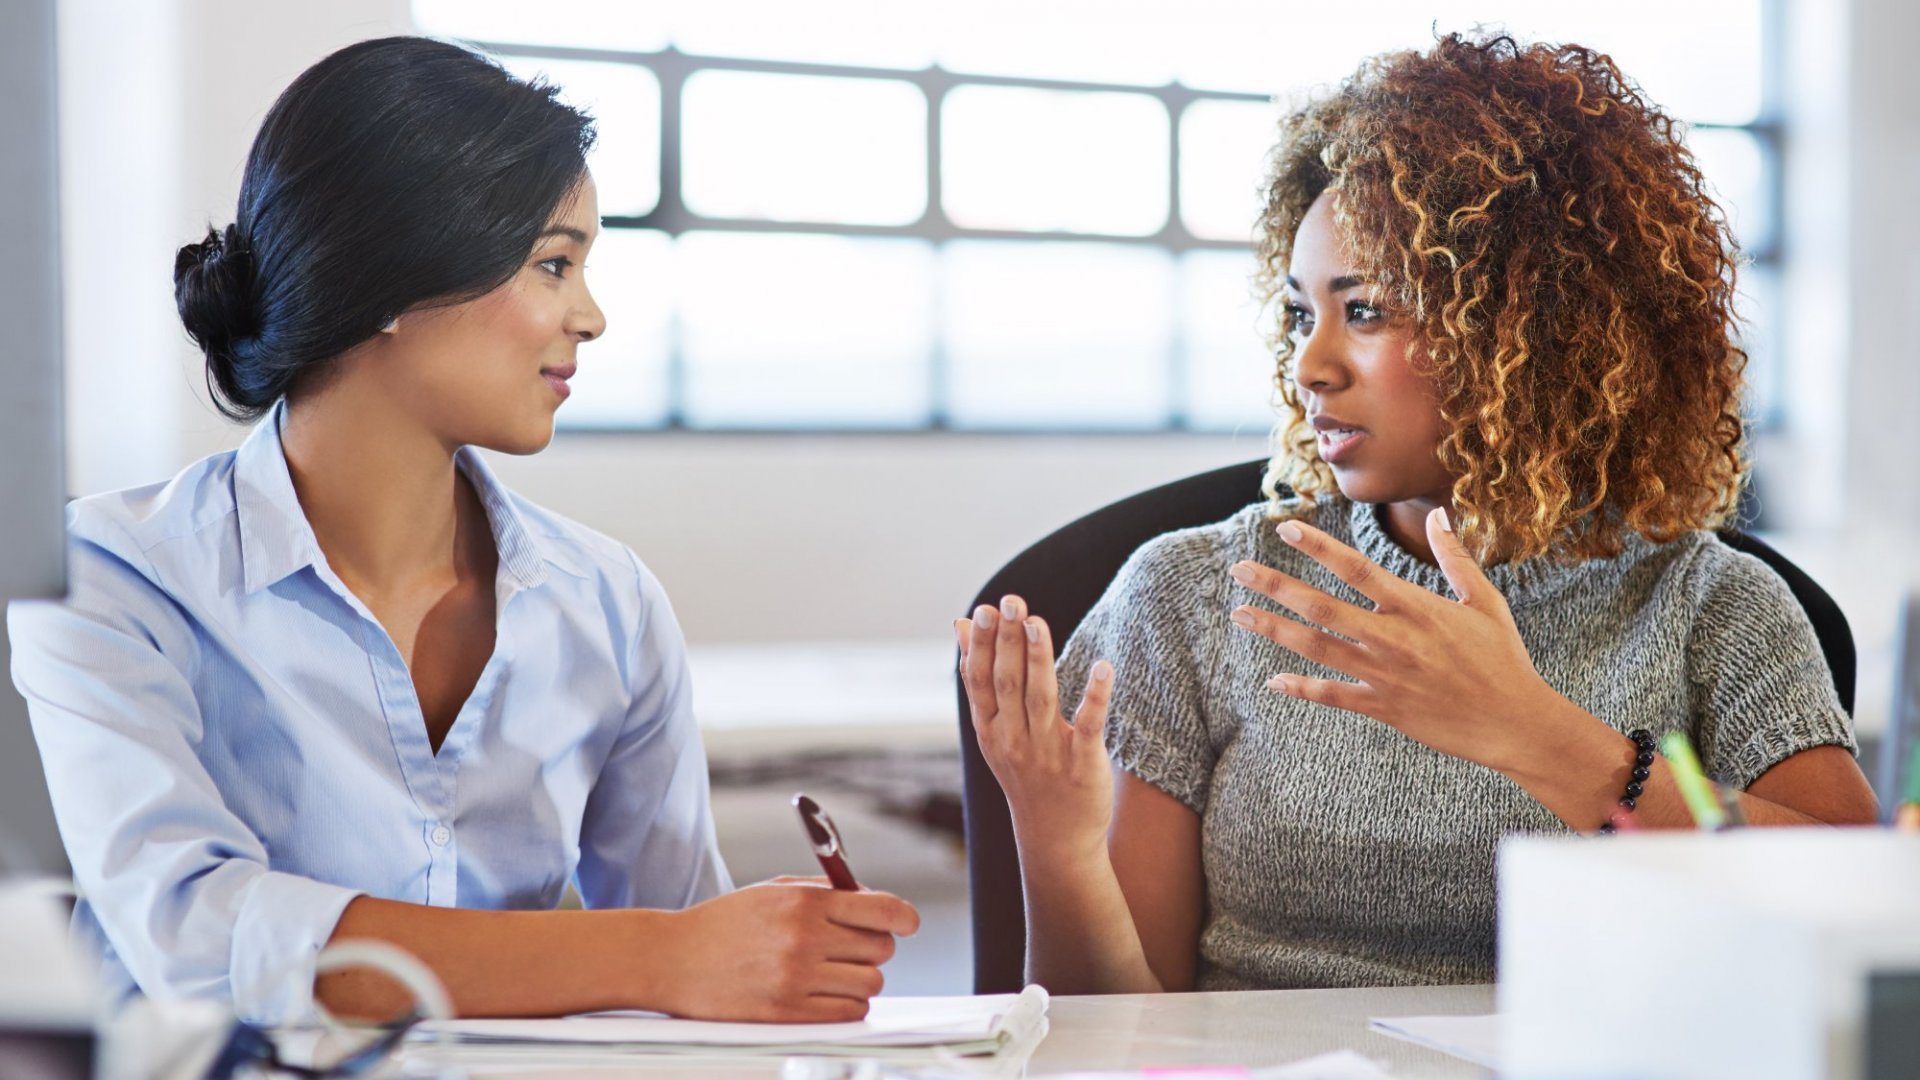 Divide Your Time Between Listening, Talking And Doing